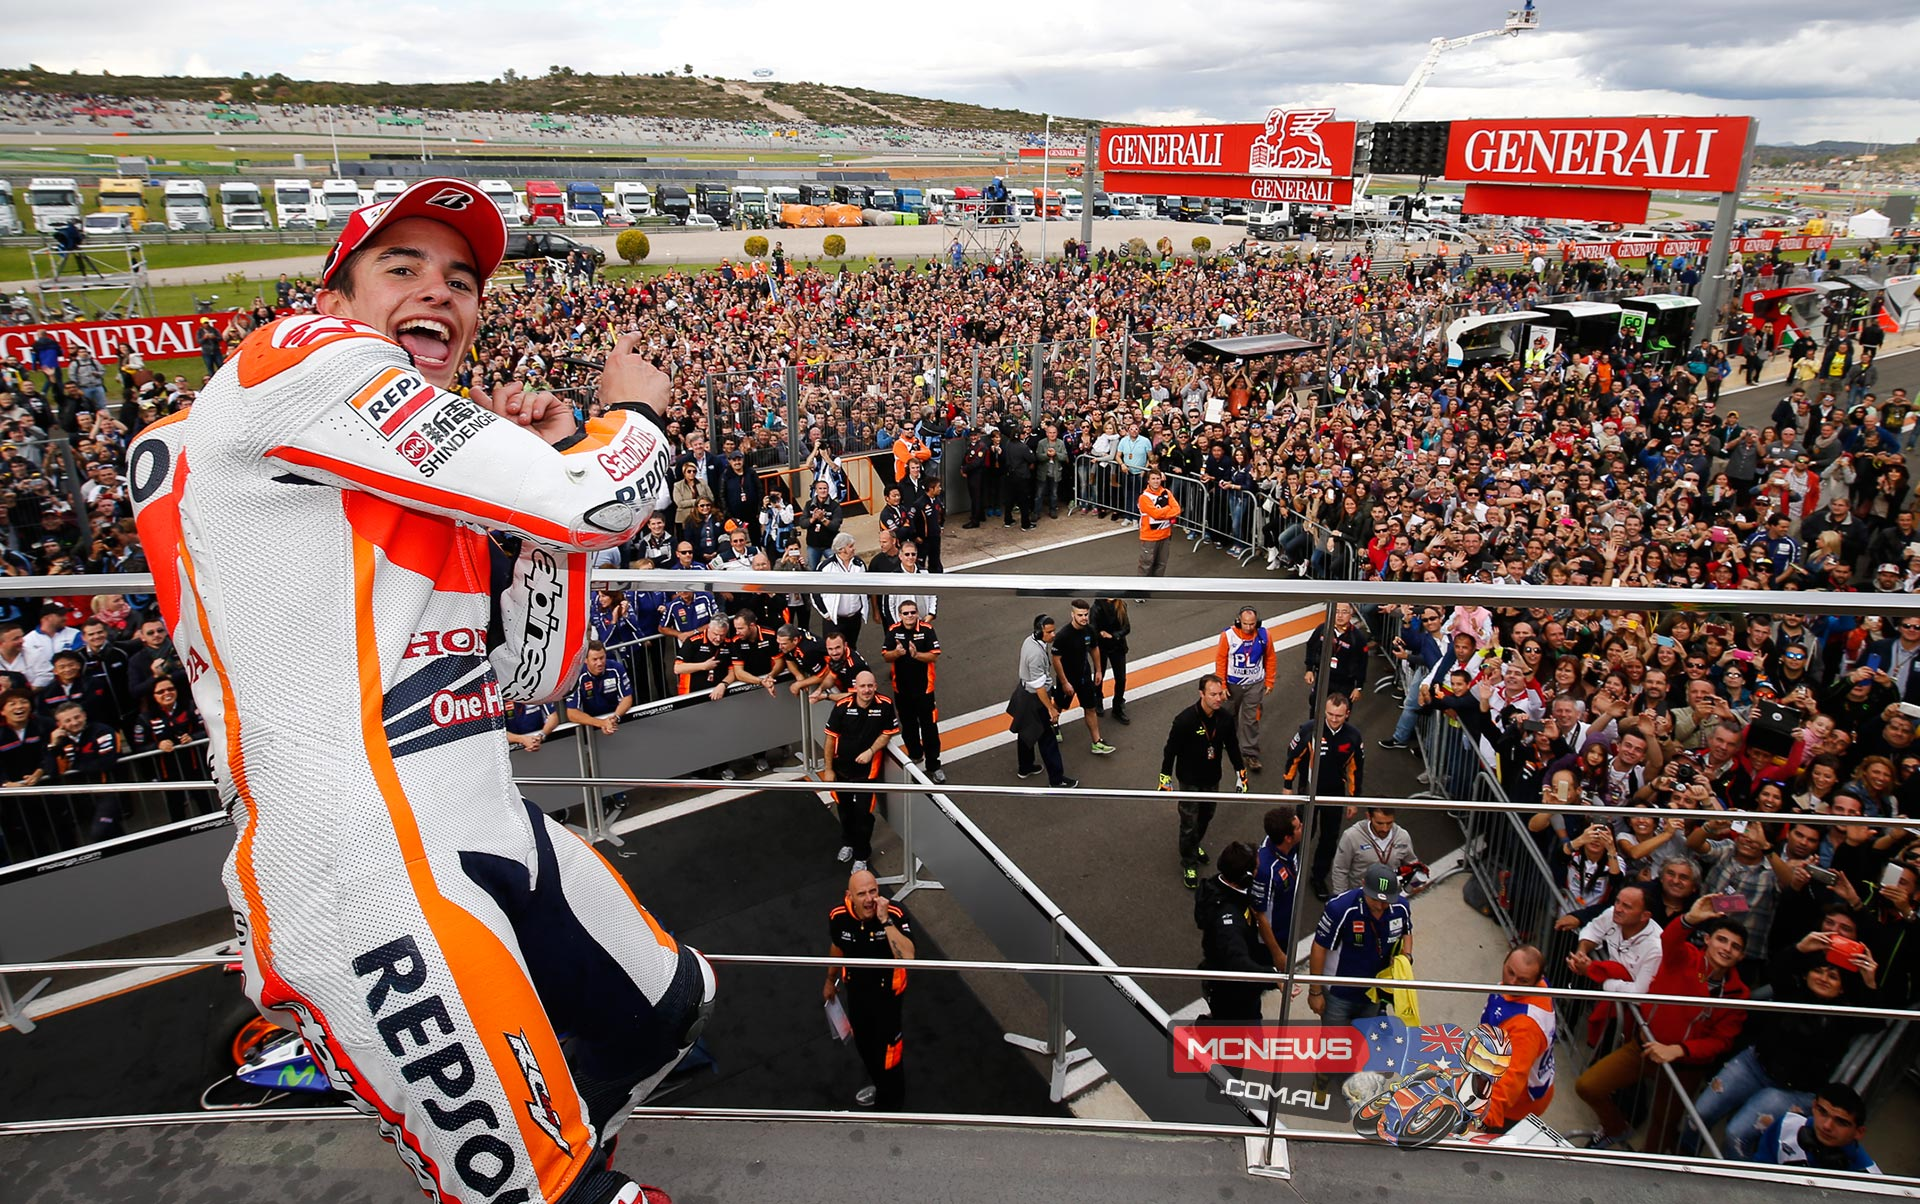 """Marc Marquez, Repsol Honda: race winner - """"I am so pleased, especially for my brother! It is a very happy day, even more than in Motegi when I was crowned champion. Today Alex took the Moto3 title that he deserved, and to cap it off I was able to close the year with a victory here in Valencia. I congratulate my brother for his season, because both him and Honda have done a great job this year! Now it's time to celebrate in the way that the occasion deserves, because it will be difficult to repeat another season like this. During today's race I was reminded of Aragon, because it was raining and there was a moment in which I considered whether or not to change the bike. In the end we stayed calm and today we were successful with our strategy. It was an ordeal which I enjoyed but suffered a bit at times! Thanks to the whole team for all their efforts this season!"""""""